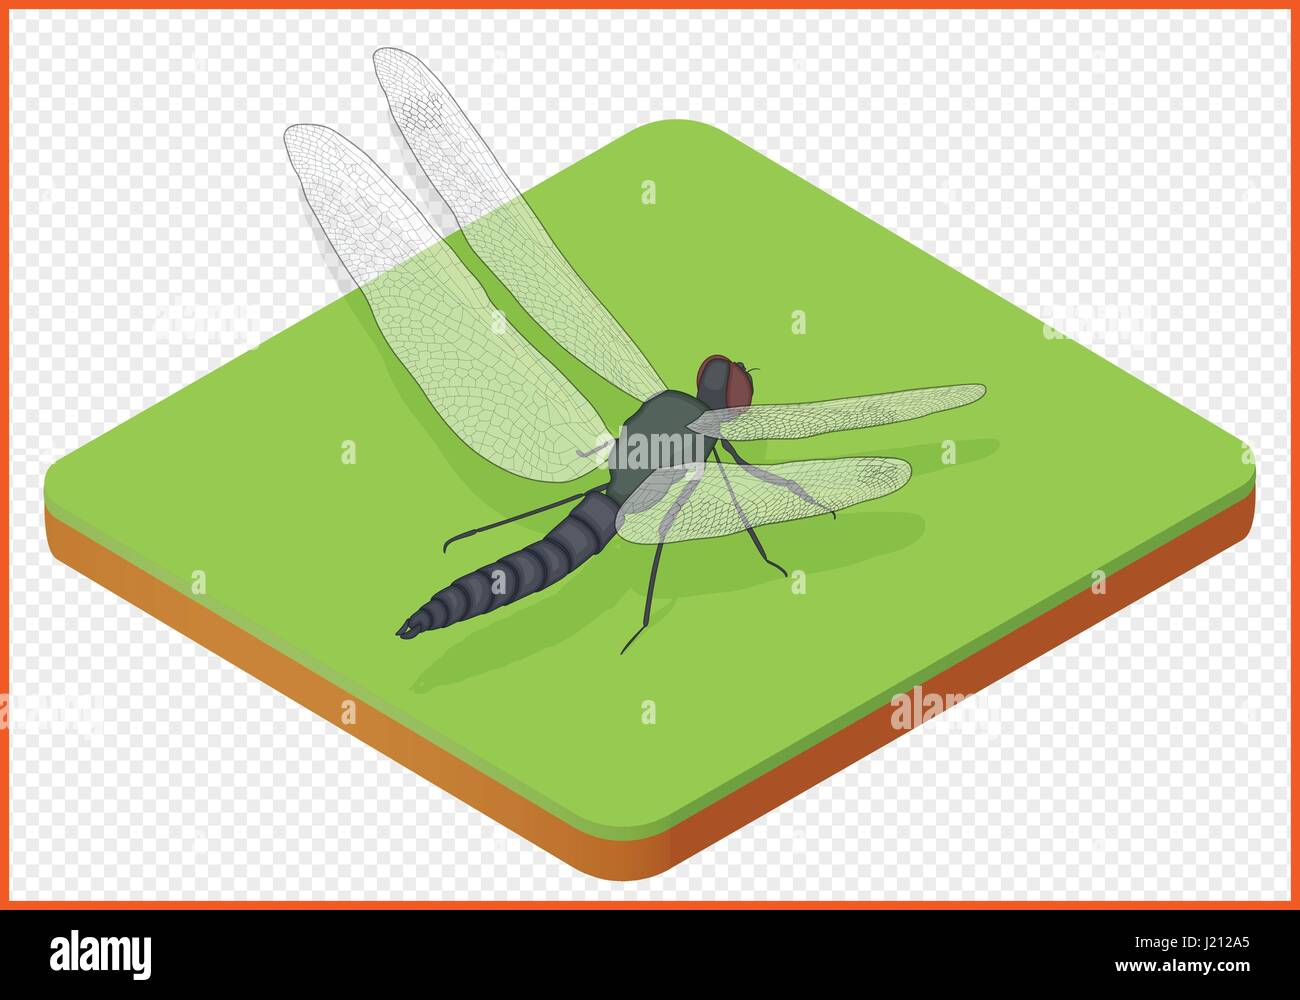 dragonfly vector eps - Stock Vector